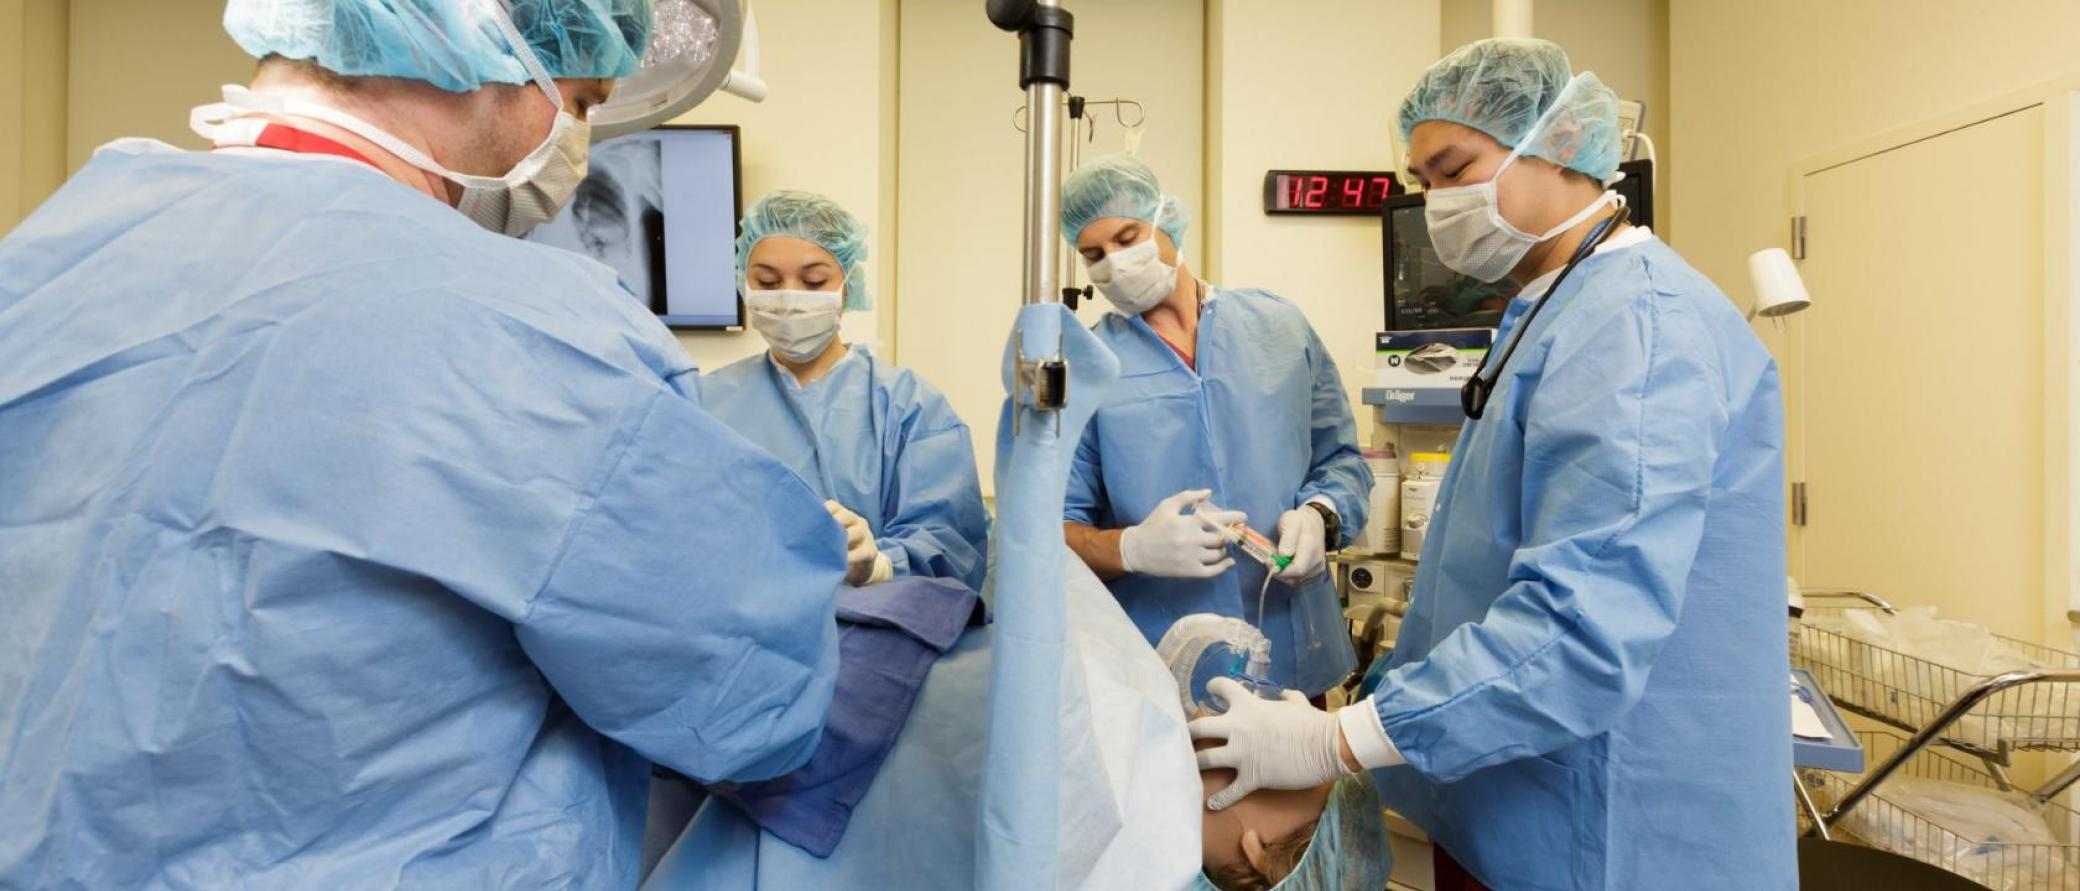 Doctor administering sedation drugs and while another administers oxygen to a patient in operating room.